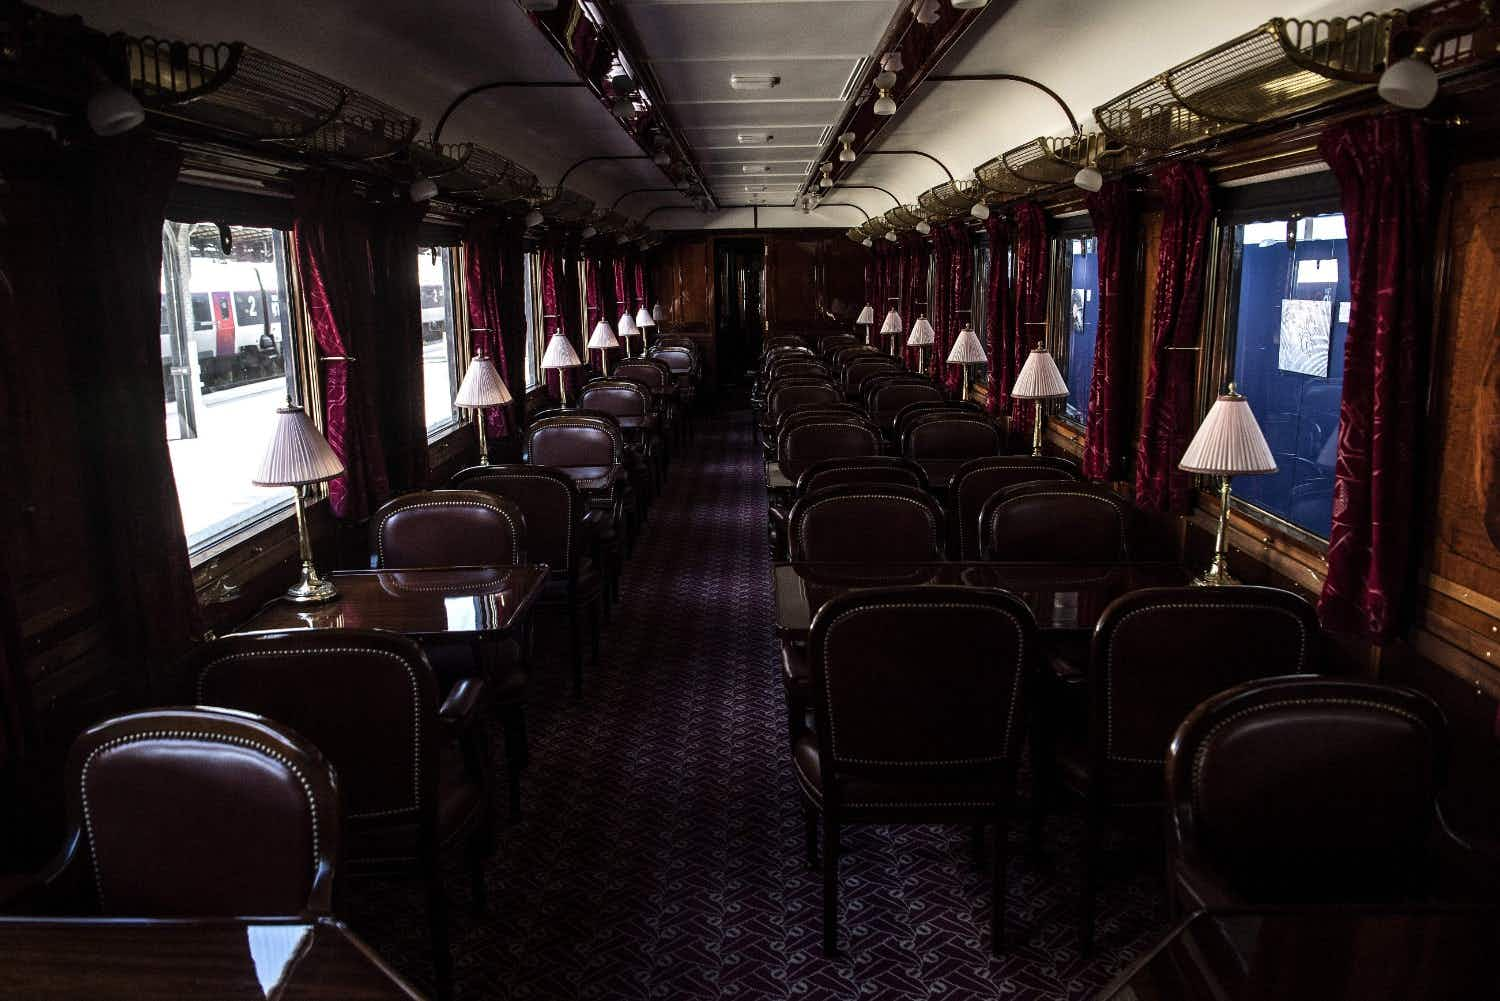 Grand refurbishment may herald the return of the historic Orient Express